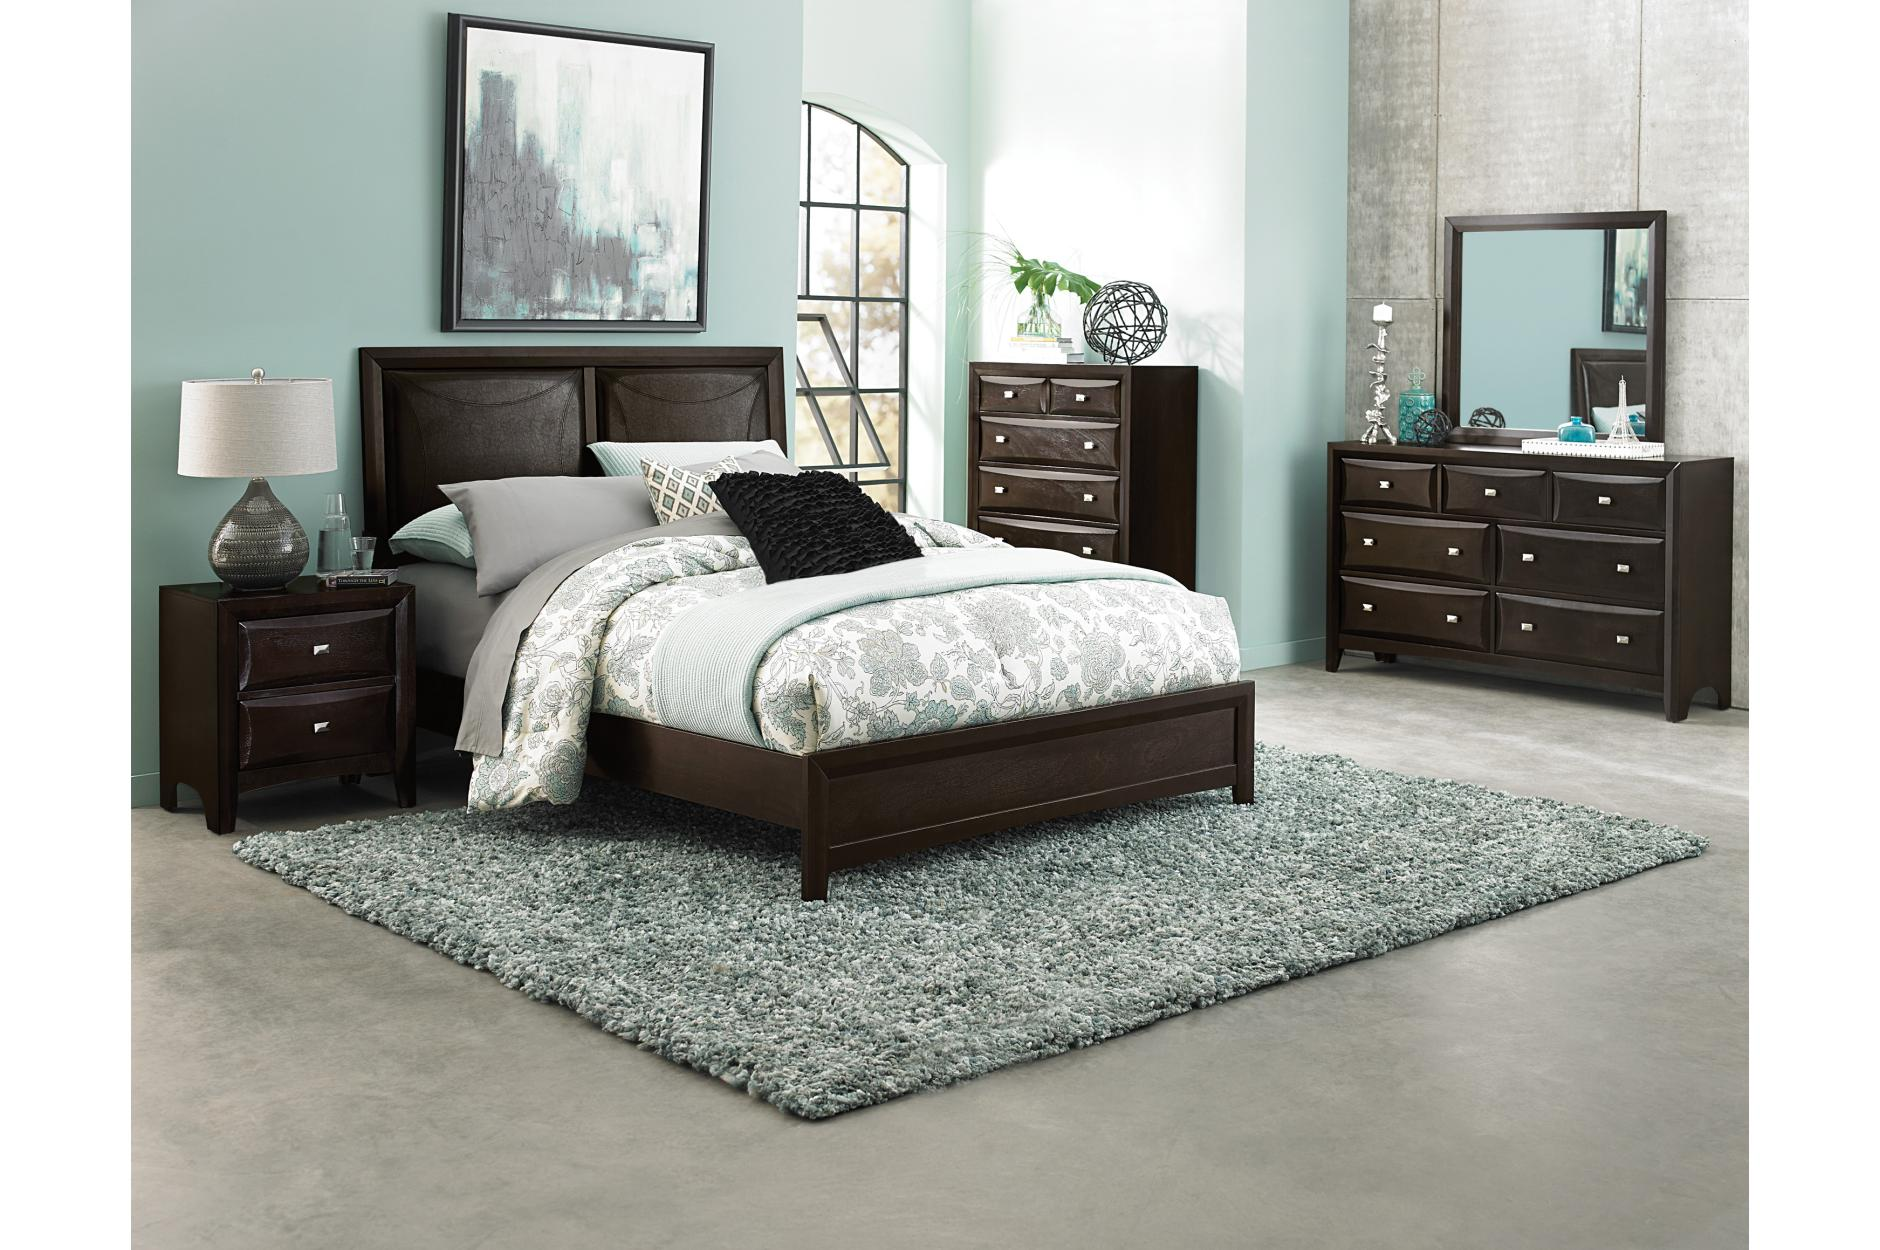 Summerlin Bed by Homelegance